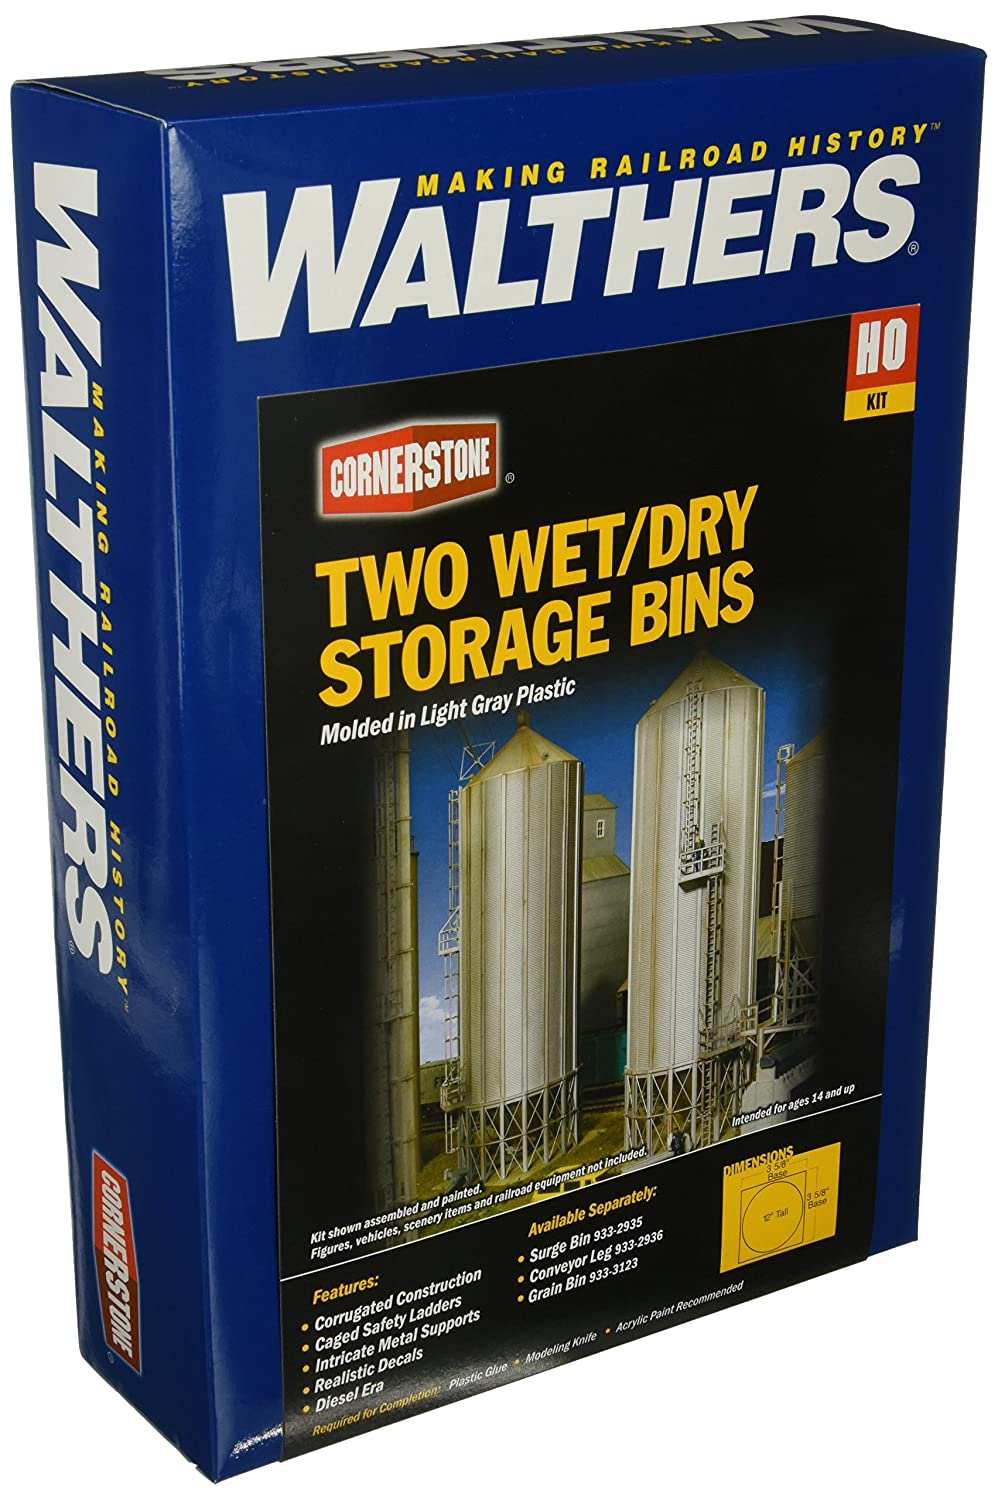 Walthers HO Scale Cornerstone Series174 Modern Grain Series Kits Wet/Dry Storage Bins (Parts for Complete Bins) 3-5/8 3-5/8 12 inches 933-2937